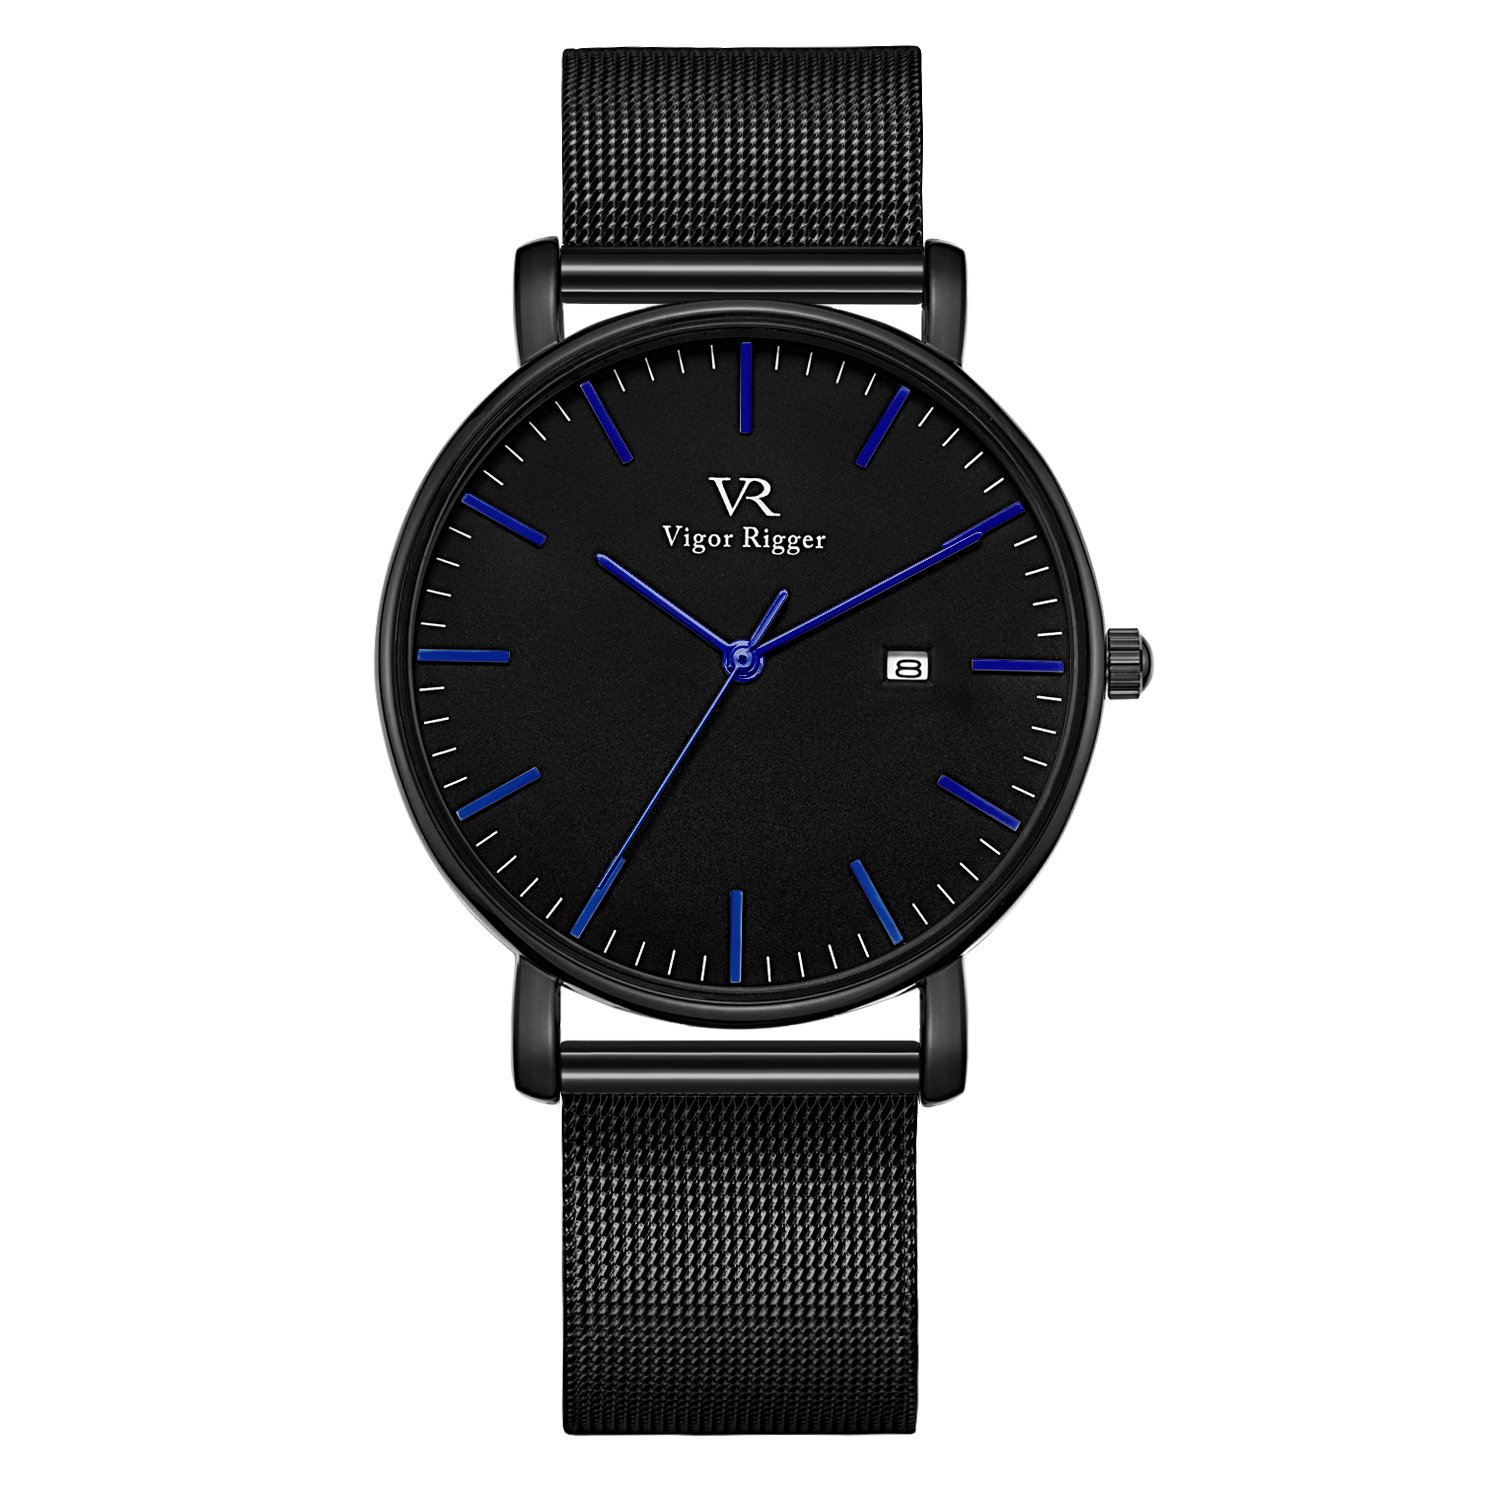 Vigor Rigger Men's Leather Stainless Steel Slim Quartz Watch 30M Waterproof Black Wristwatch